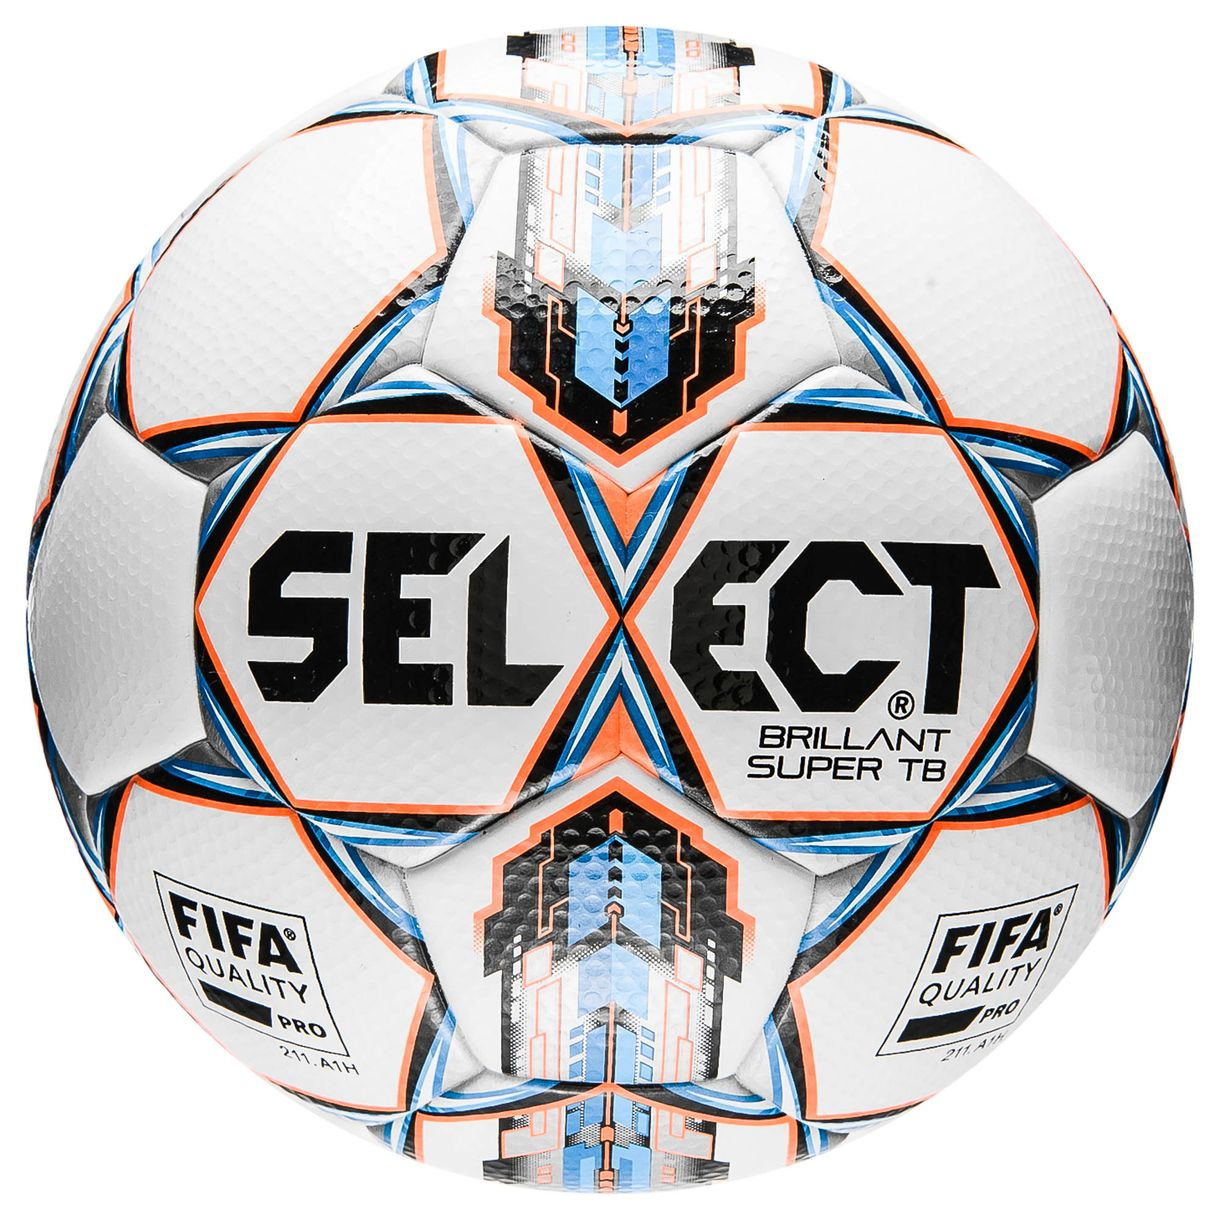 Мяч футбольный SELECT BRILLIANT SUPER FIFA TB